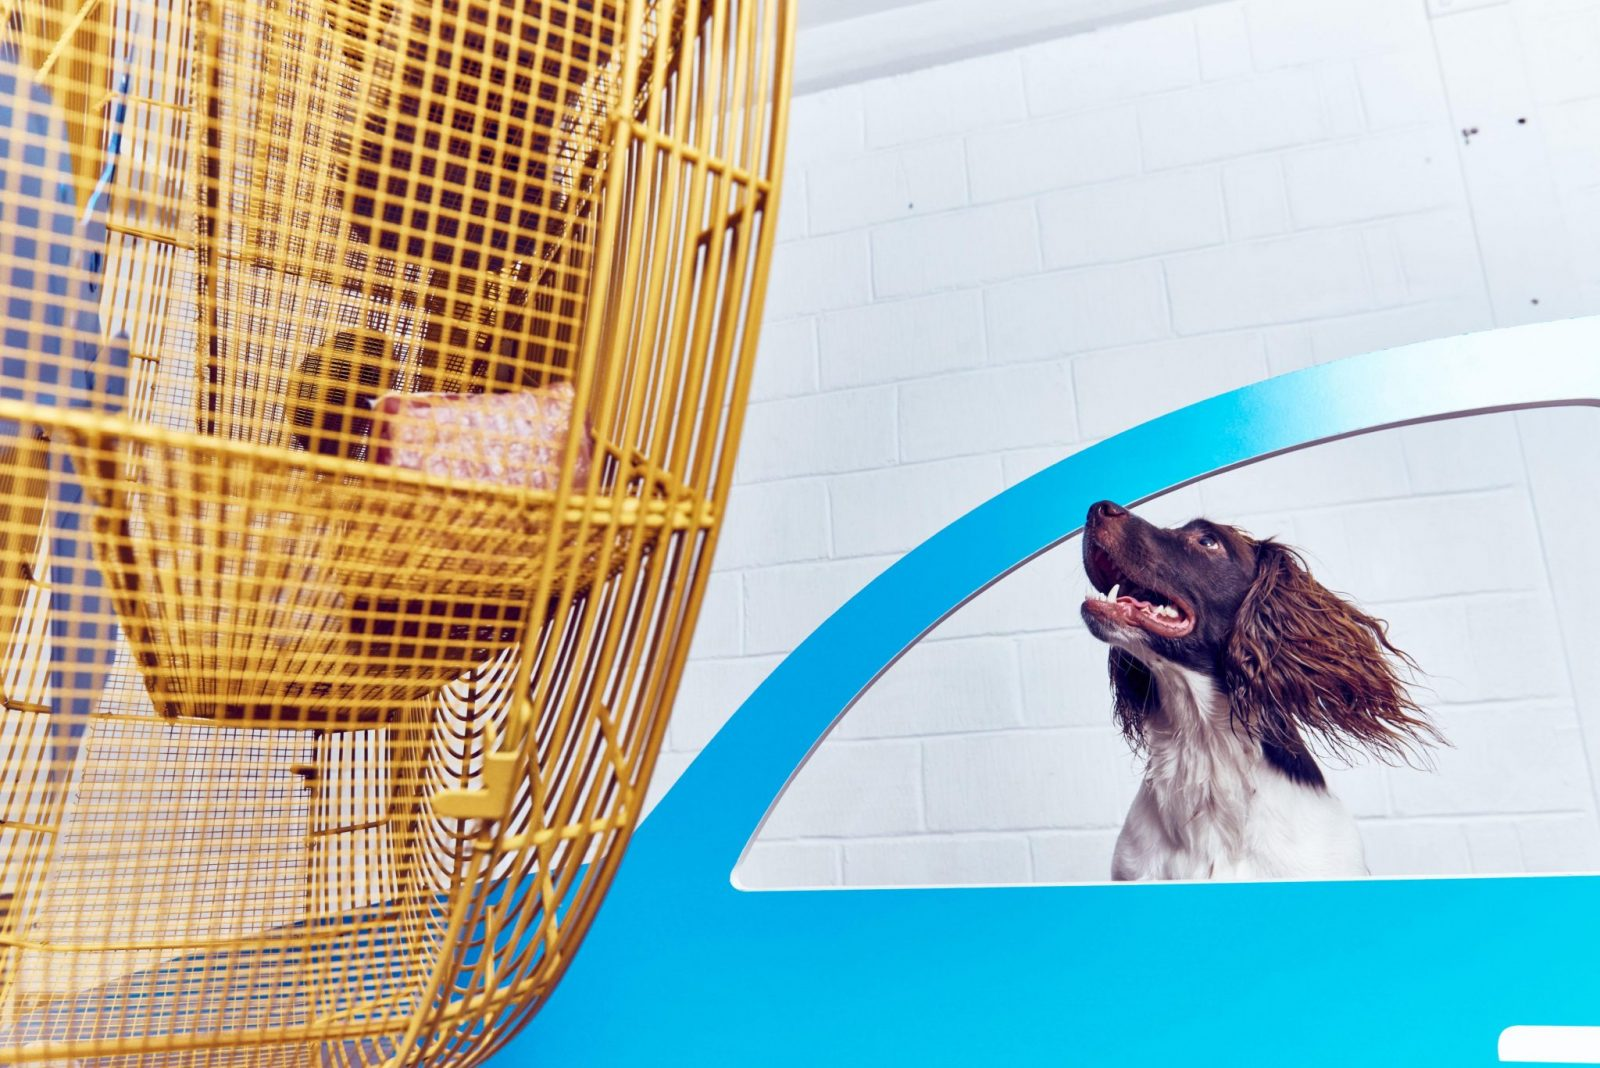 Friday 19th August 2016, Bermondsey, London: Today, MORE TH>N opens a contemporary art exhibition just for dogs in London. Artist Dominic Wilcox has created a series of interactive, contemporary art installations for dogs to enjoy, with each artwork based on an activity they love to do to encourage people to #PlayMore with their pets. This picture: ÔCruising CaninesÕ being enjoyed by a springer spaniel Ð an open car window simulator where a giant fan wafts a dogÕs favourite scents (such as raw meat and old shoes) through the air as a trio of dogs pop their heads through the windows of a pop art style car. For further information please contact Rachel Aldersley at Cow PR on 020 7234 9156 or morethan@cowpr.com PR Handout - free for editorial usage. Copyright: © Mikael Buck / MORE TH>N